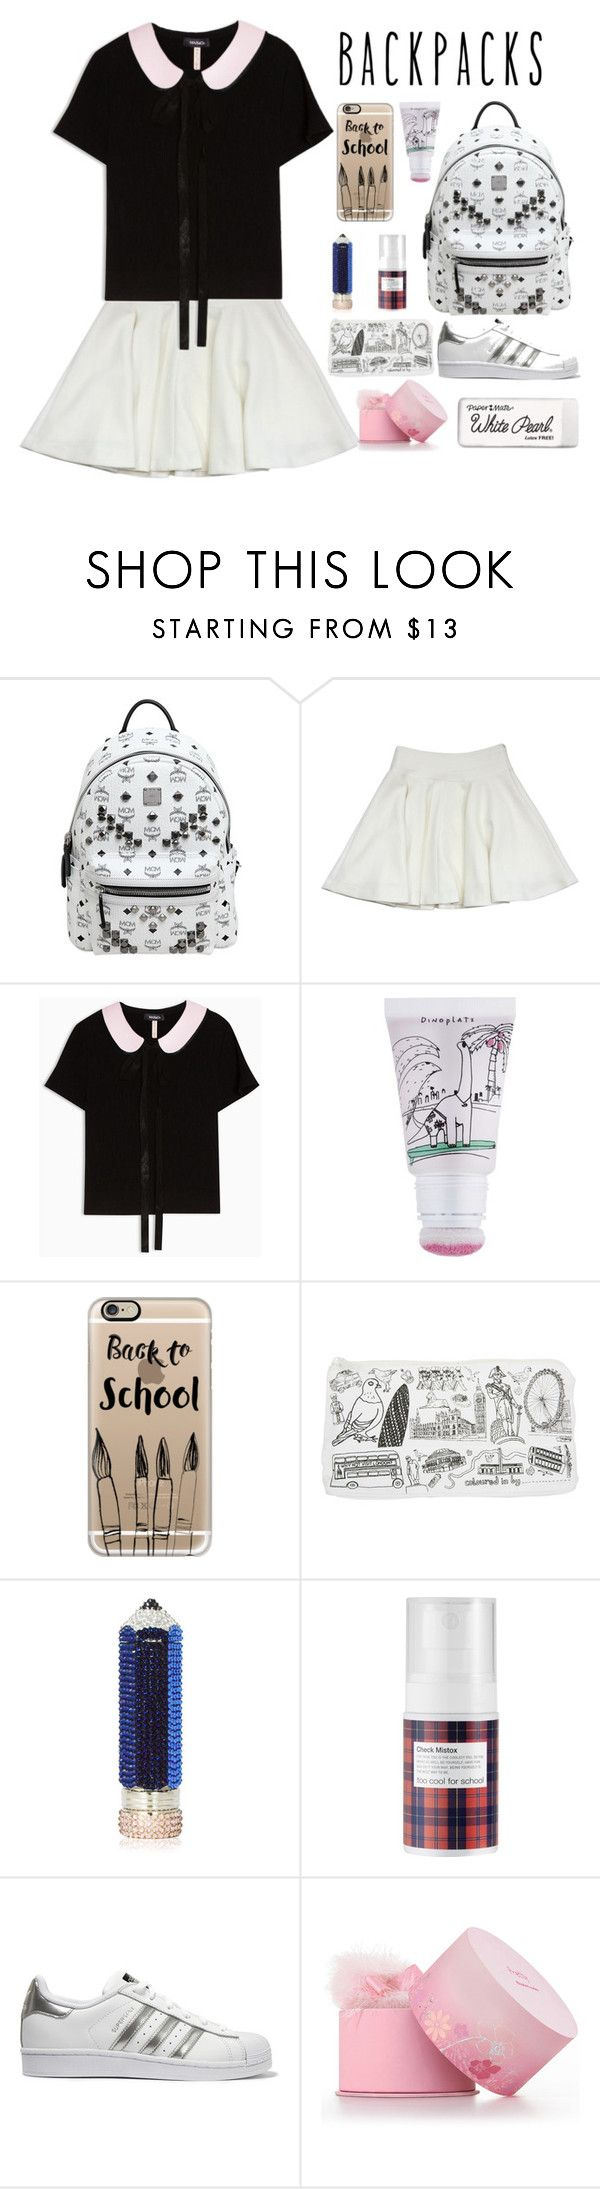 """""""Cool bag for school"""" by steviepumpkin ❤ liked on Polyvore featuring MCM, Milly, Max&Co., too cool for school, Casetify, Judith Leiber, adidas Originals, Elizabeth Arden, Paper Mate and backpacks"""